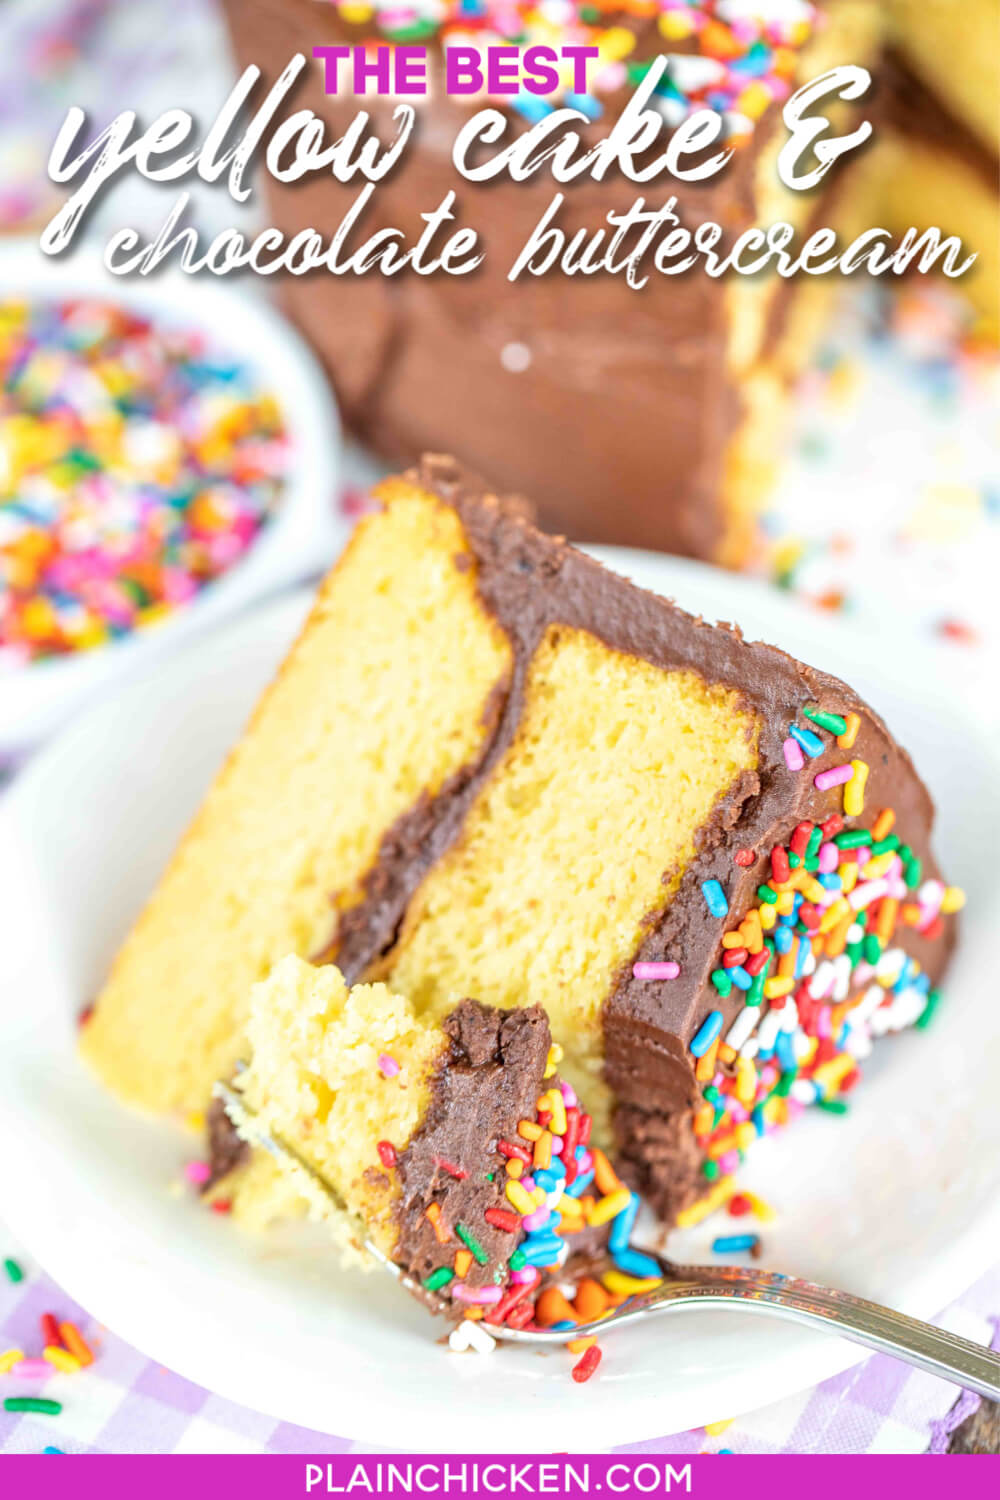 The Best Yellow Cake Chocolate Buttercream Frosting A Classic Combination Super Easy To Make Start Wi In 2020 Boxed Cake Mixes Recipes Cake Ingredients Desserts